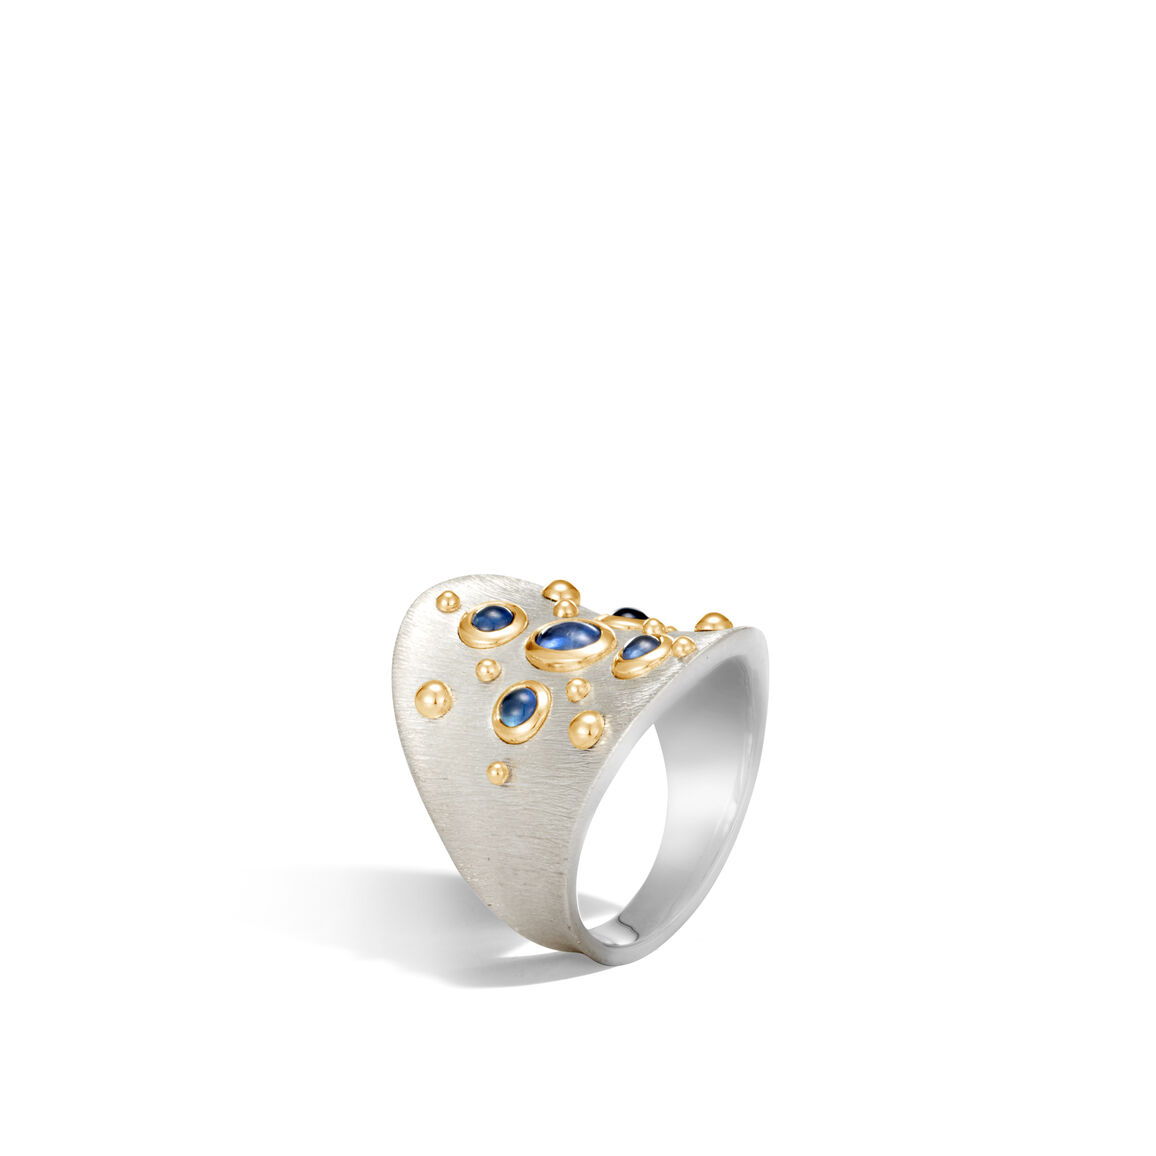 Dot Saddle Ring in Brushed Silver and 18K Gold, Gemstone